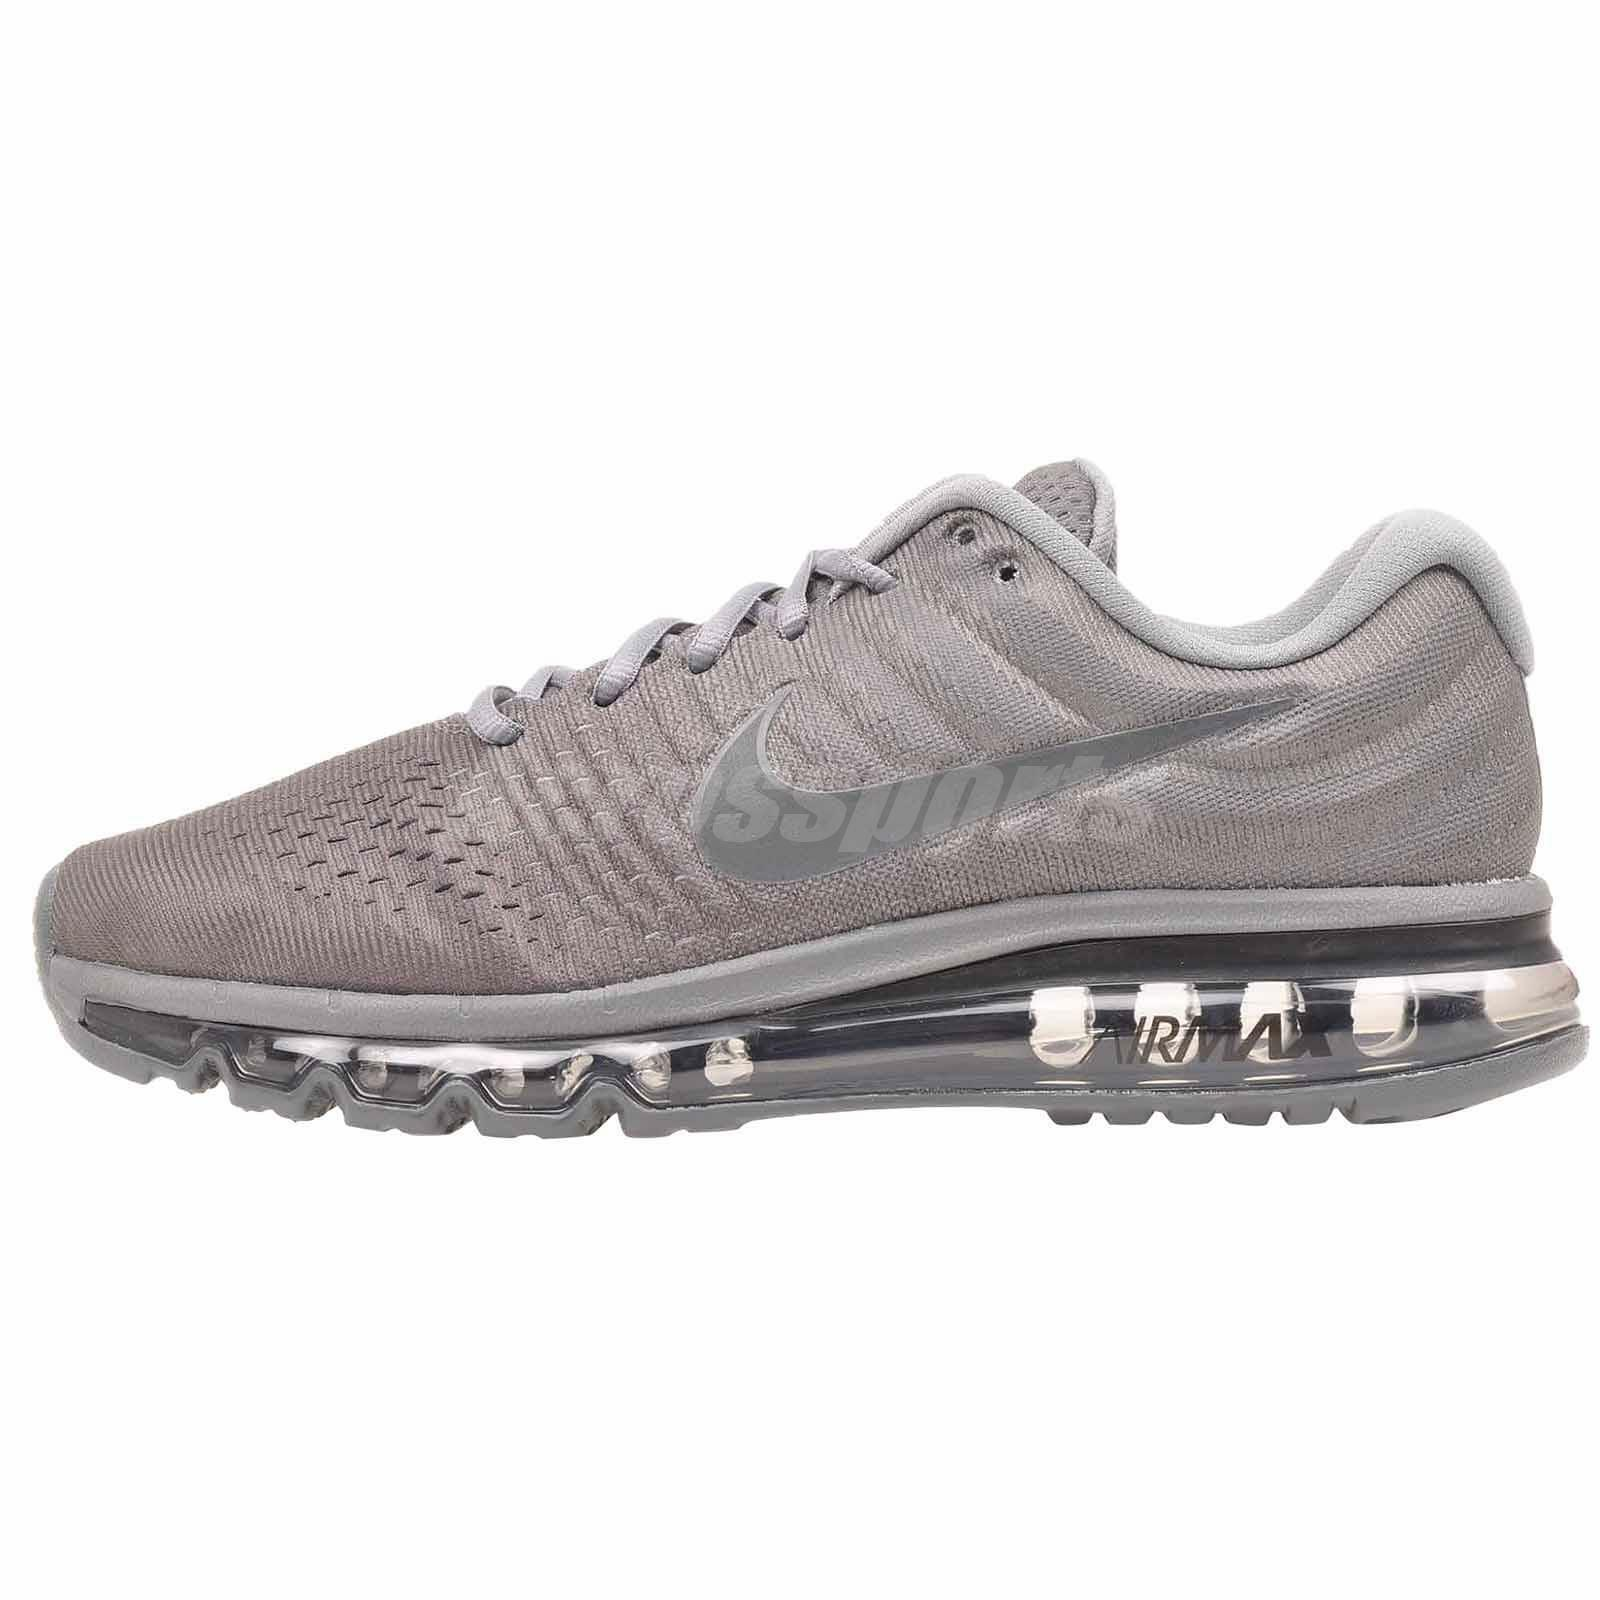 Nike Air Max 2017 Running Mens shoes Grey Anthracite 849559-008